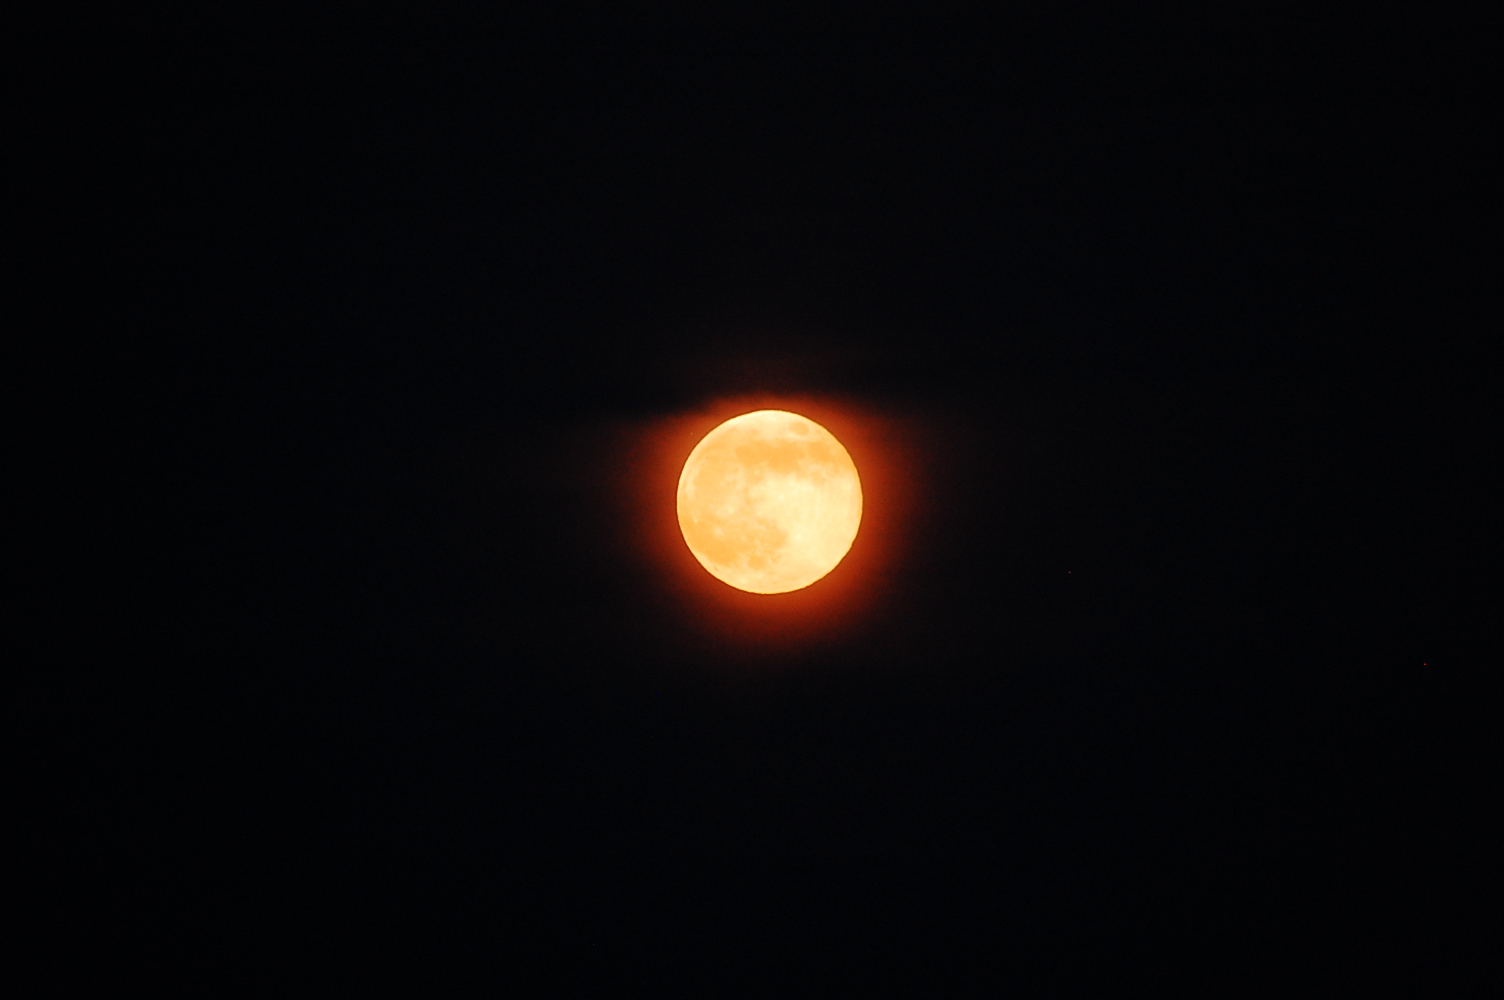 The Moon is on fire